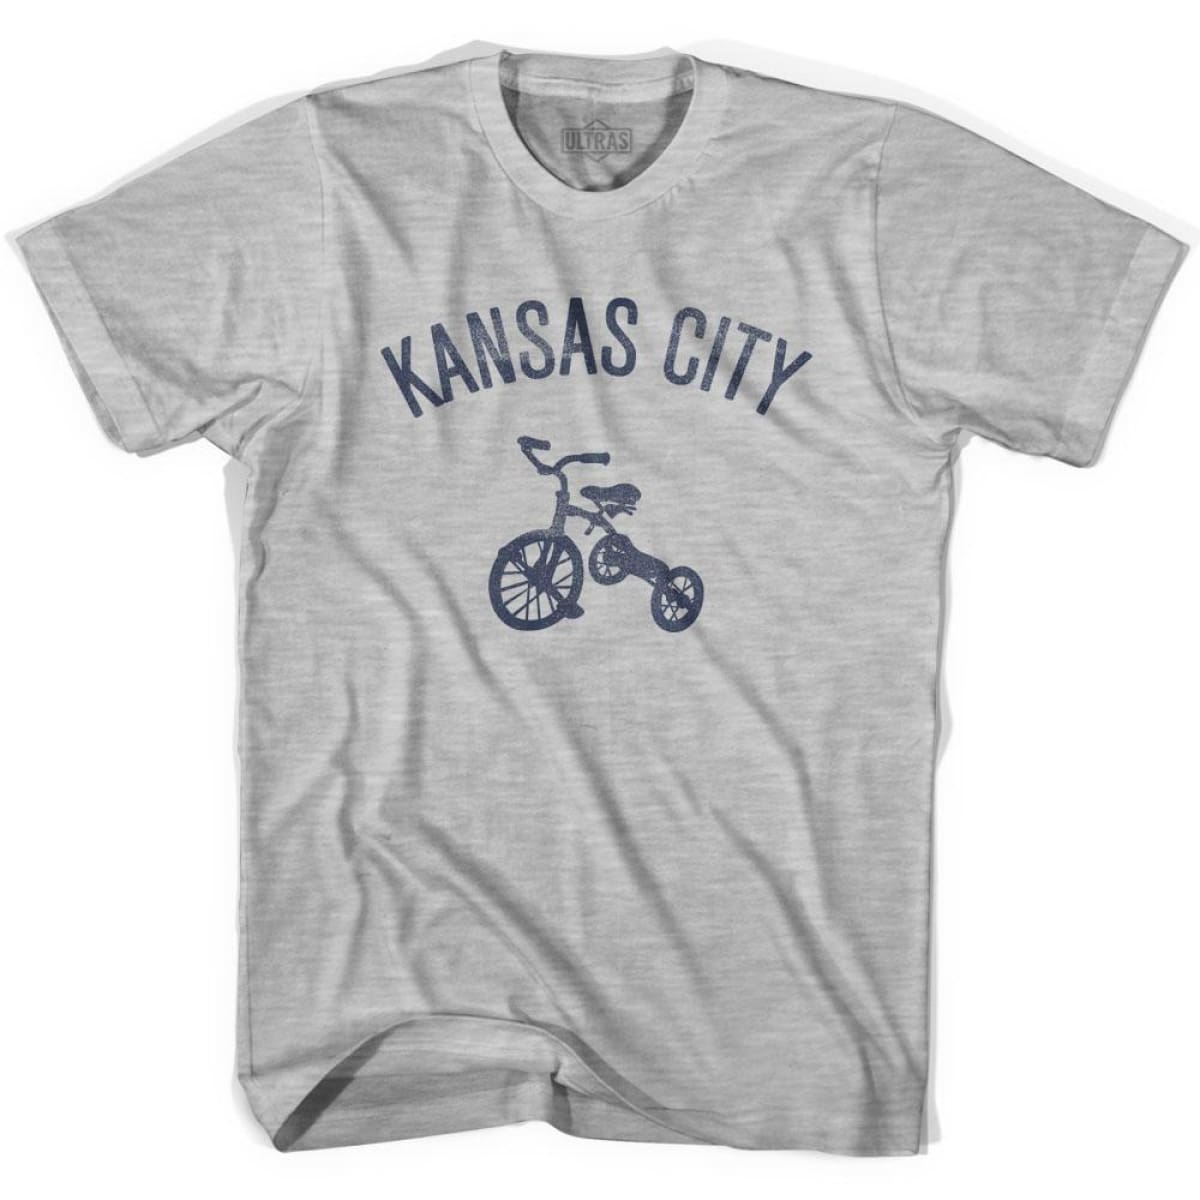 Kansas City Tricycle Youth Cotton T-shirt - Tricycle City